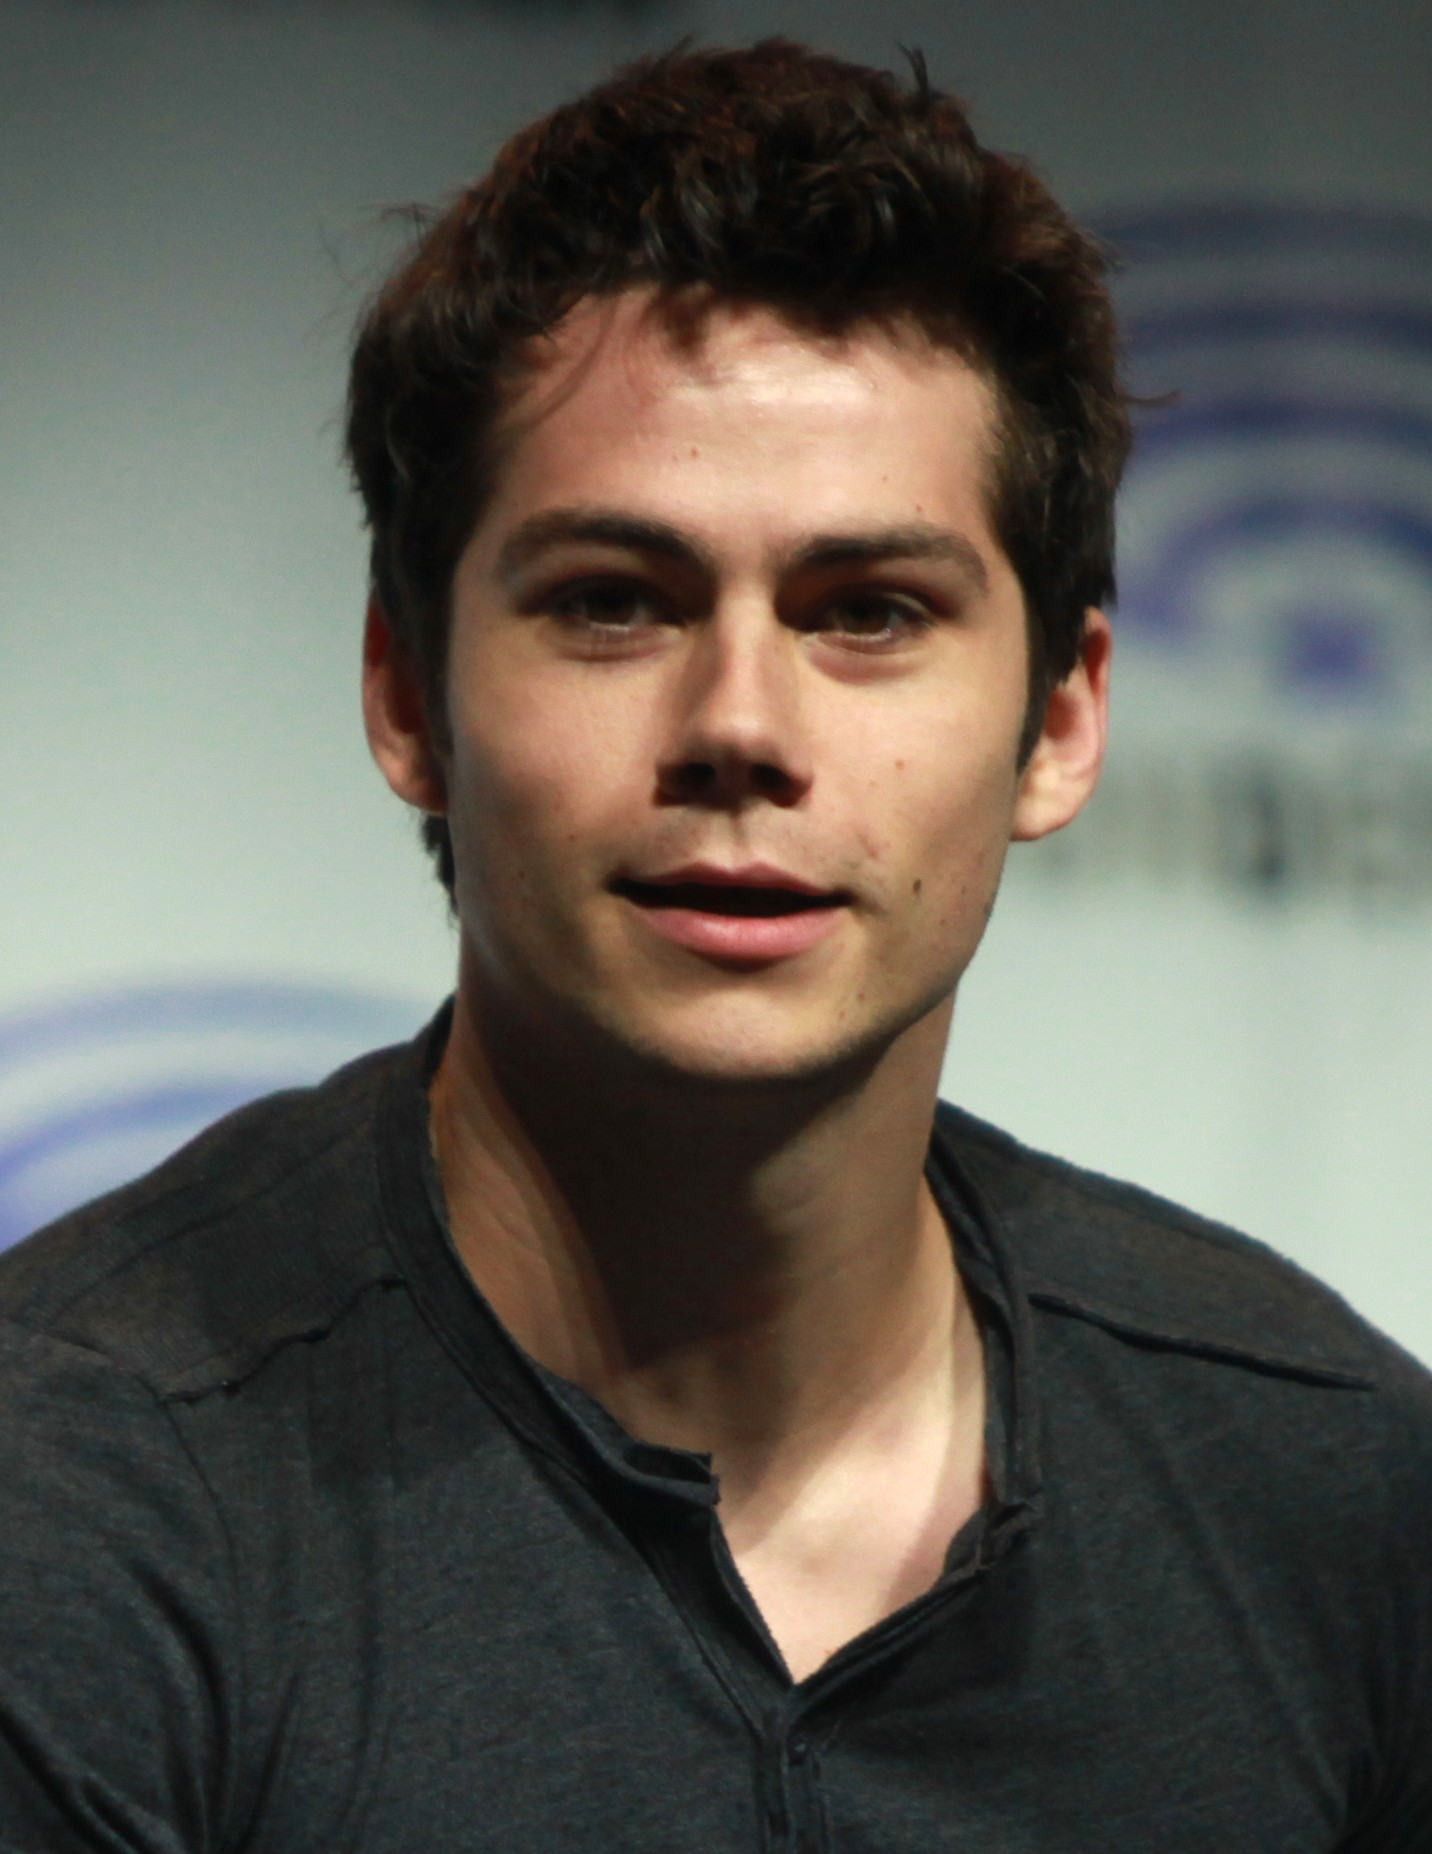 File dylan o 39 brien 2014 cropped jpg wikimedia commons for The dylan